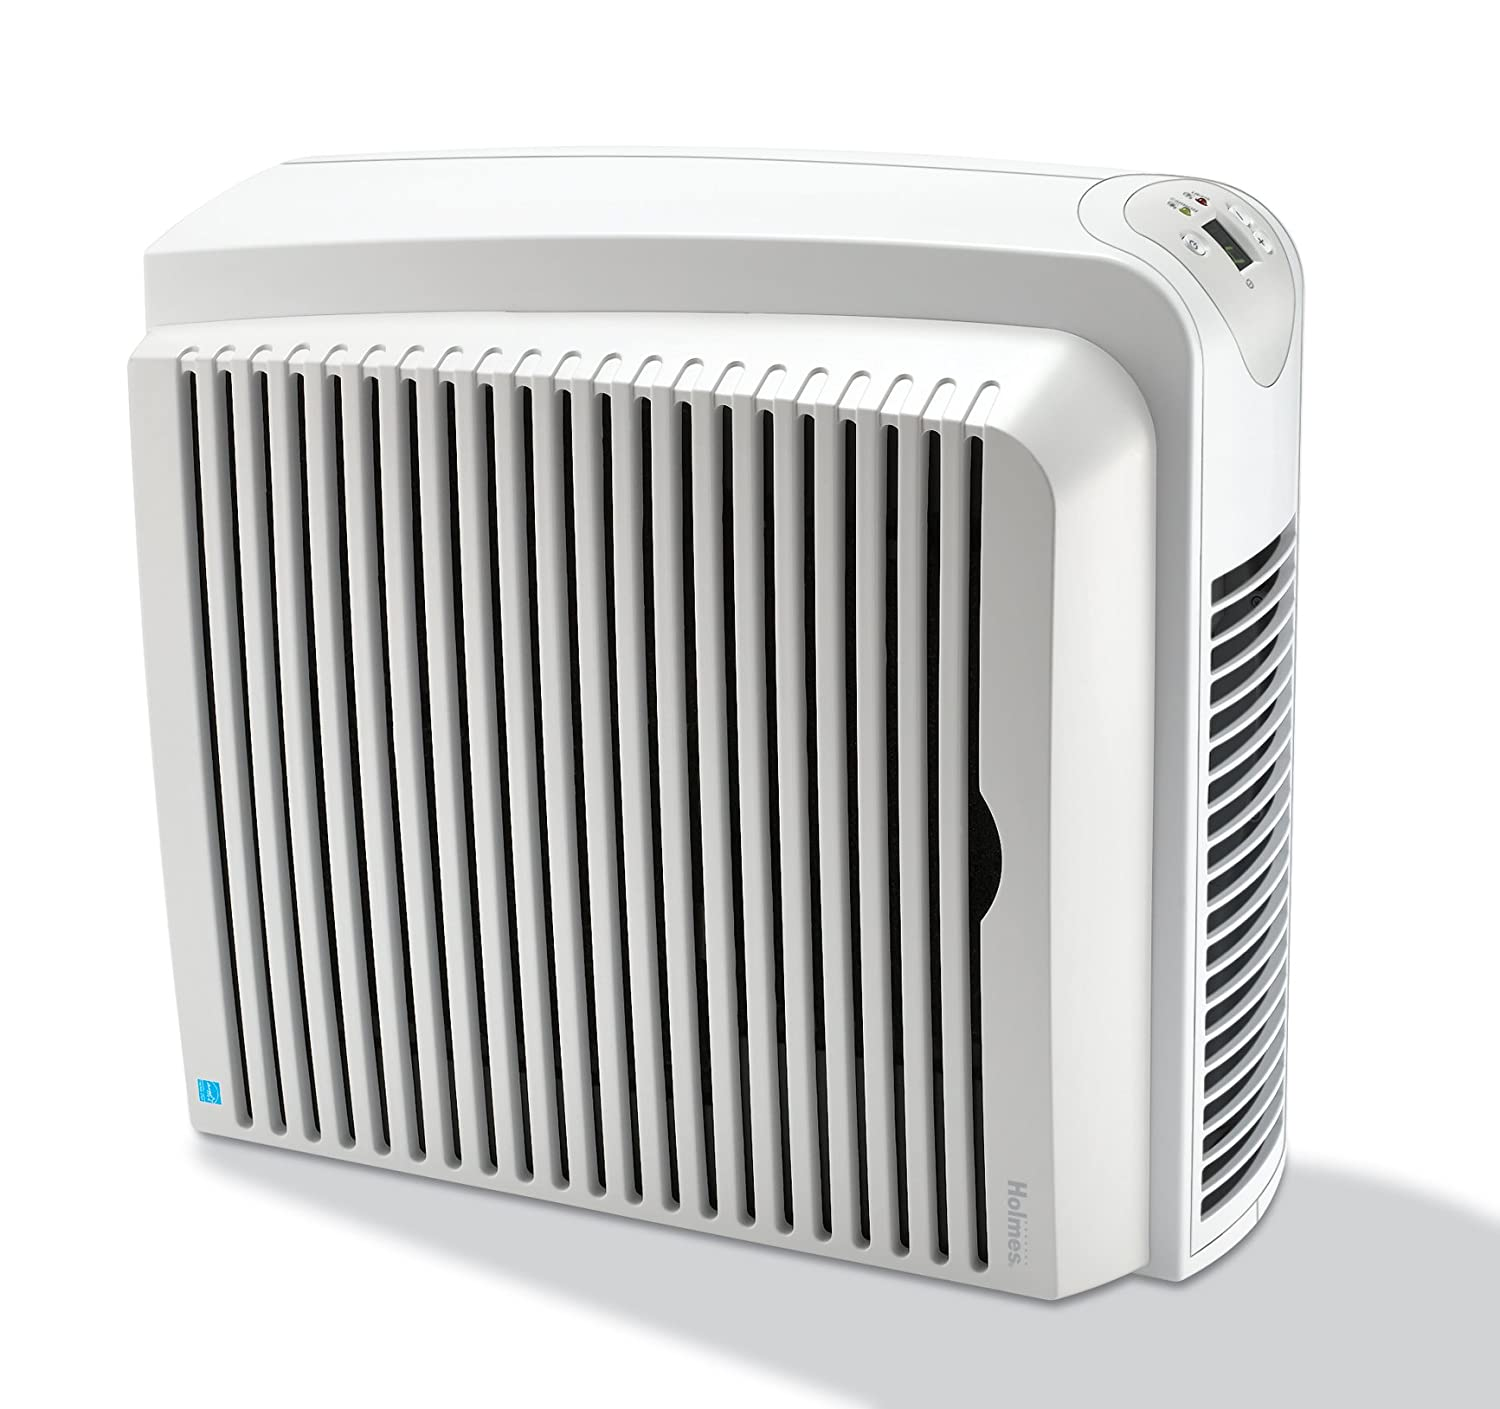 Best air purifier for allergies: True HEPA Filter & Holmes HAPF60-U3 Carbon Filter